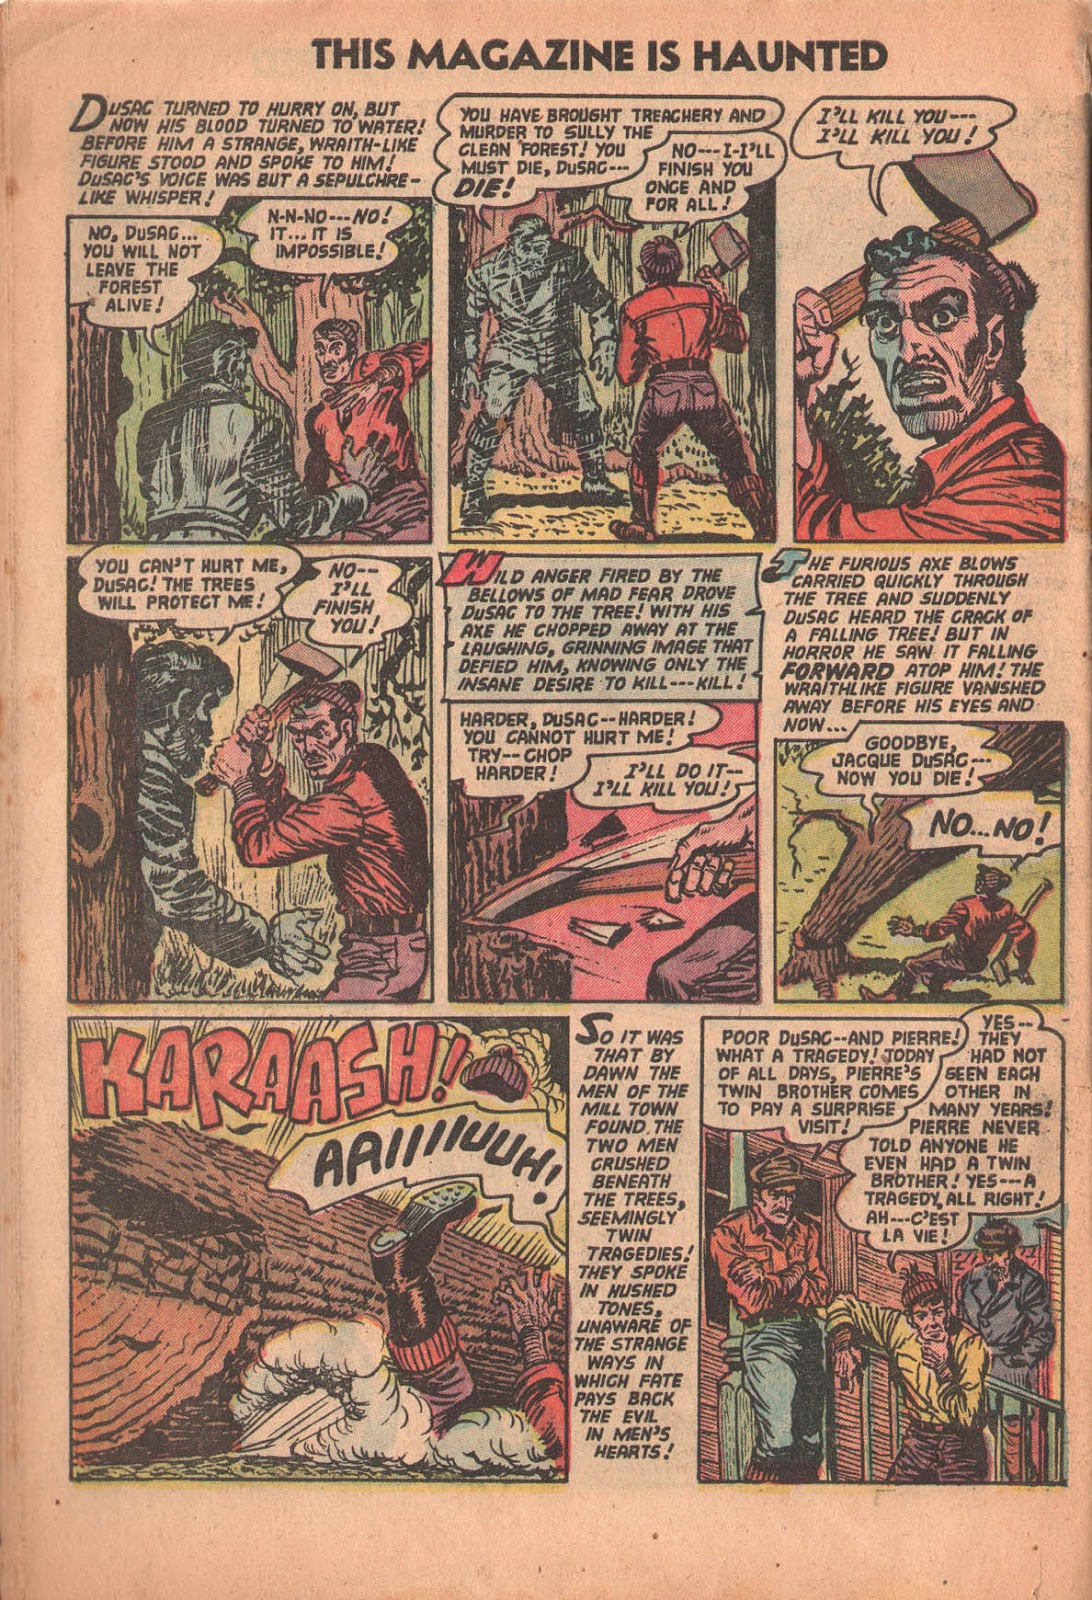 Read online This Magazine Is Haunted comic -  Issue #15 - 34